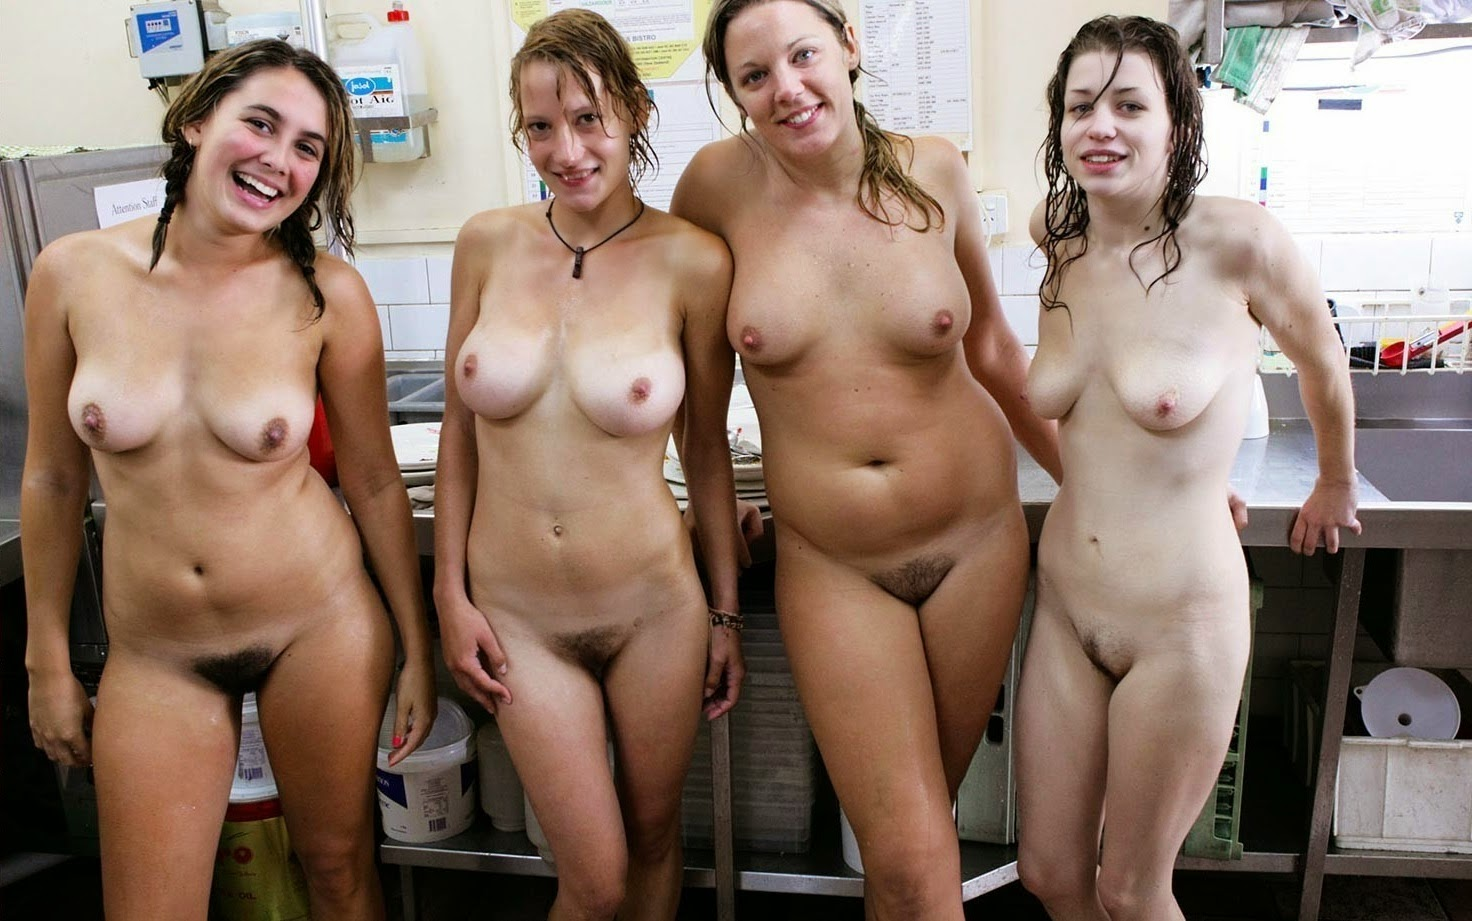 from Tristan nude women in groups